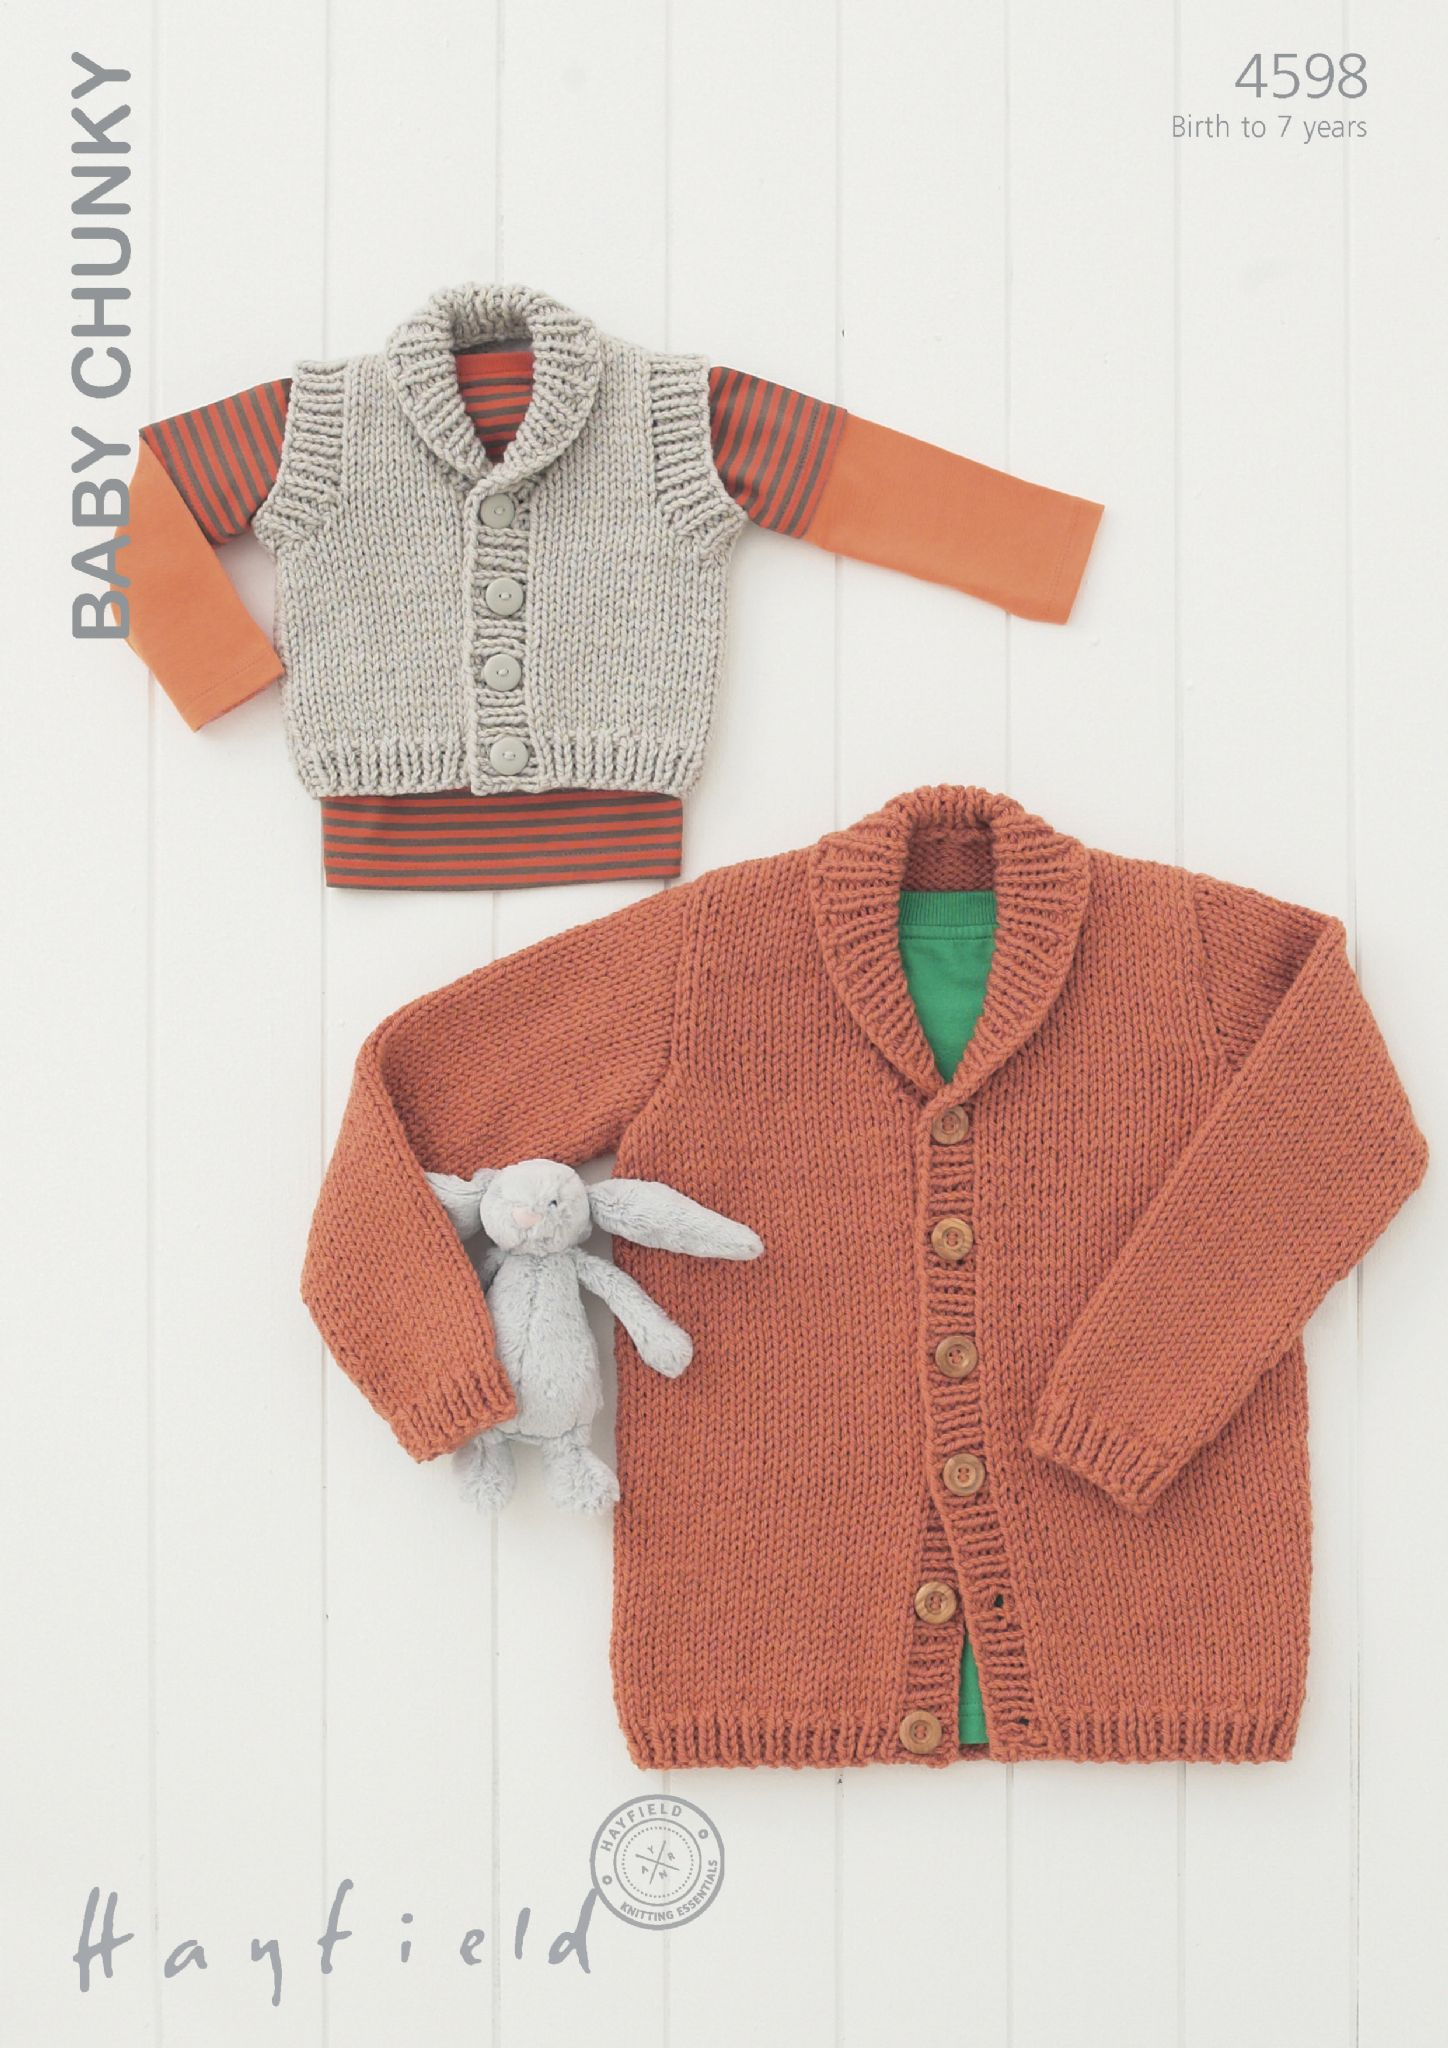 Hayfield Knitting Patterns For Babies : 4598 - HAYFIELD BABY CHUNKY SHAWL COLLARED CARDIGAN & WAISTCOAT KNITTING ...